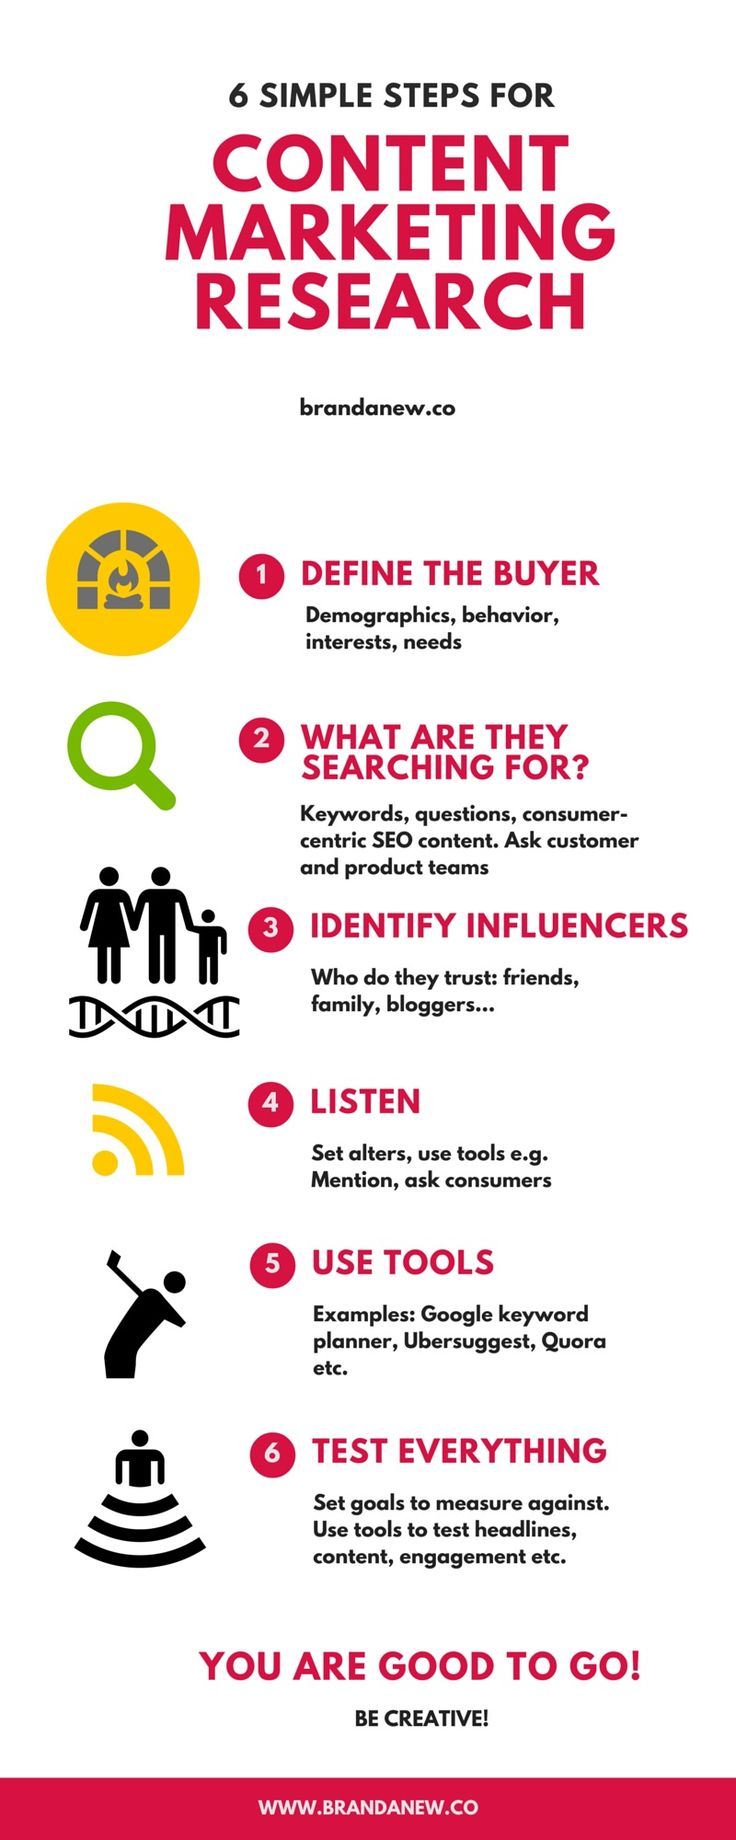 how to do content marketing research #contentmarketing #brandanew #research #infographic